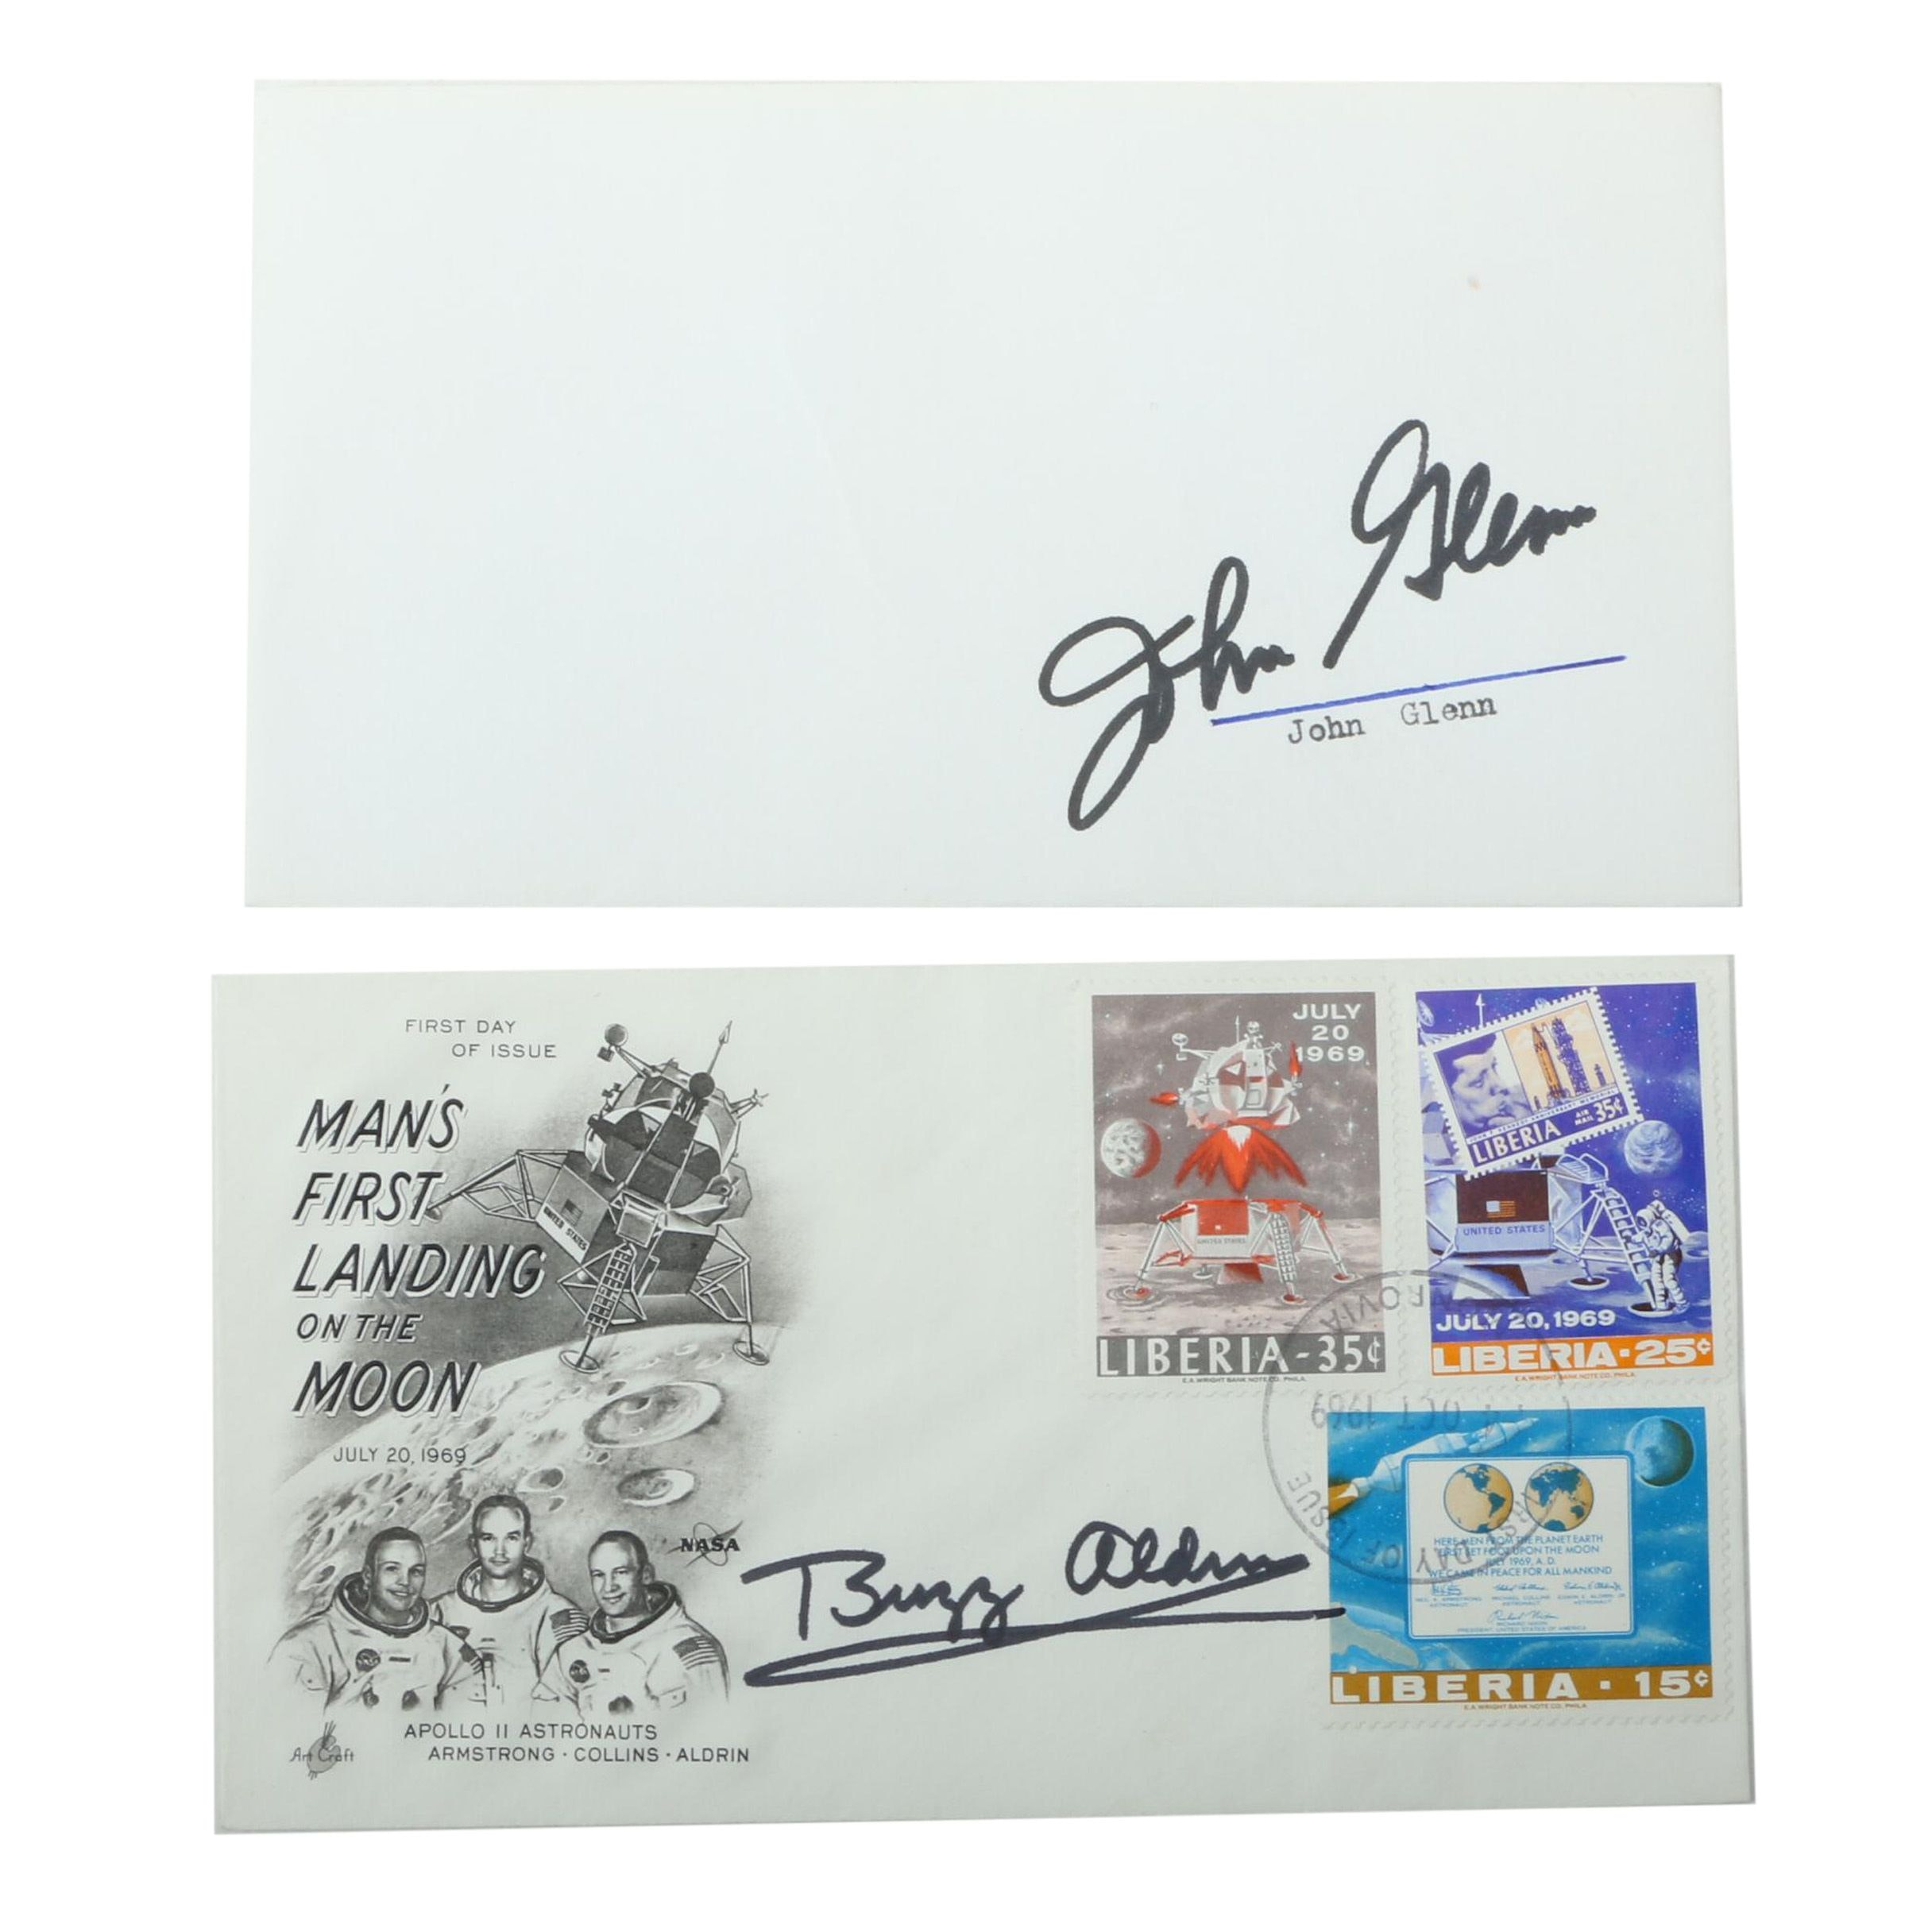 John Glenn and Buzz Aldrin Autographed Envelops